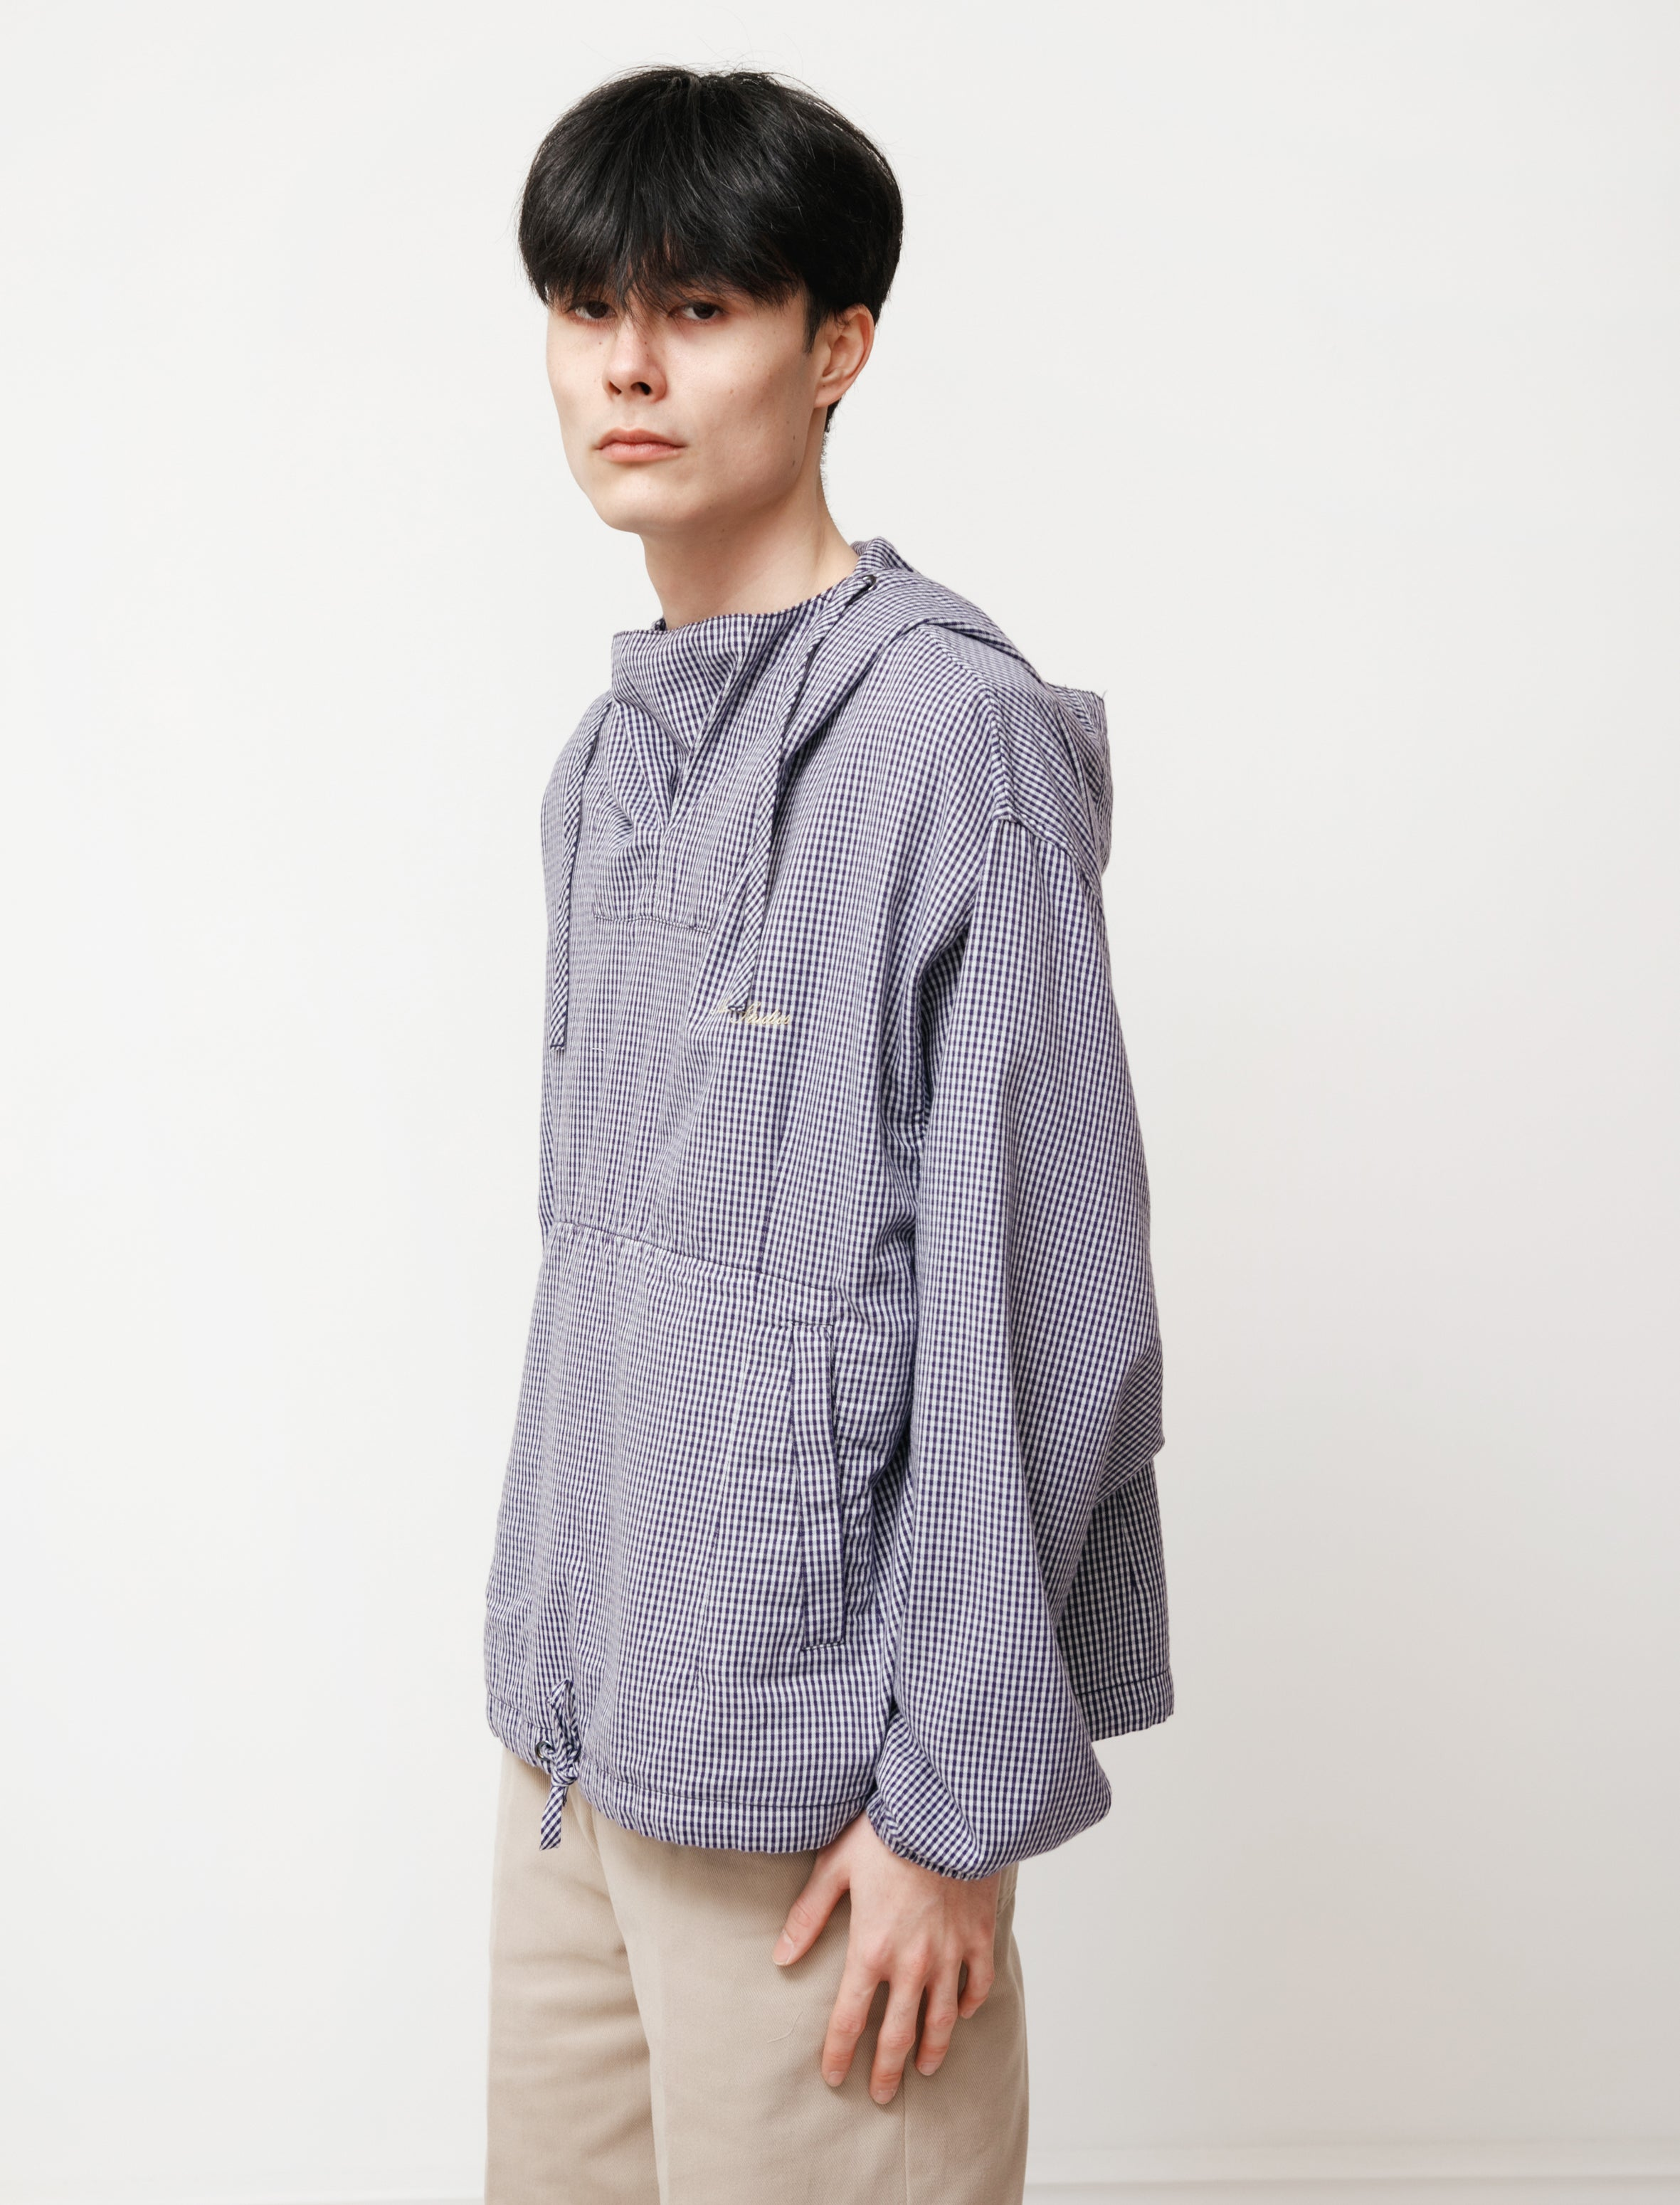 acne studios Anorak Gingham Navy/Pale Green